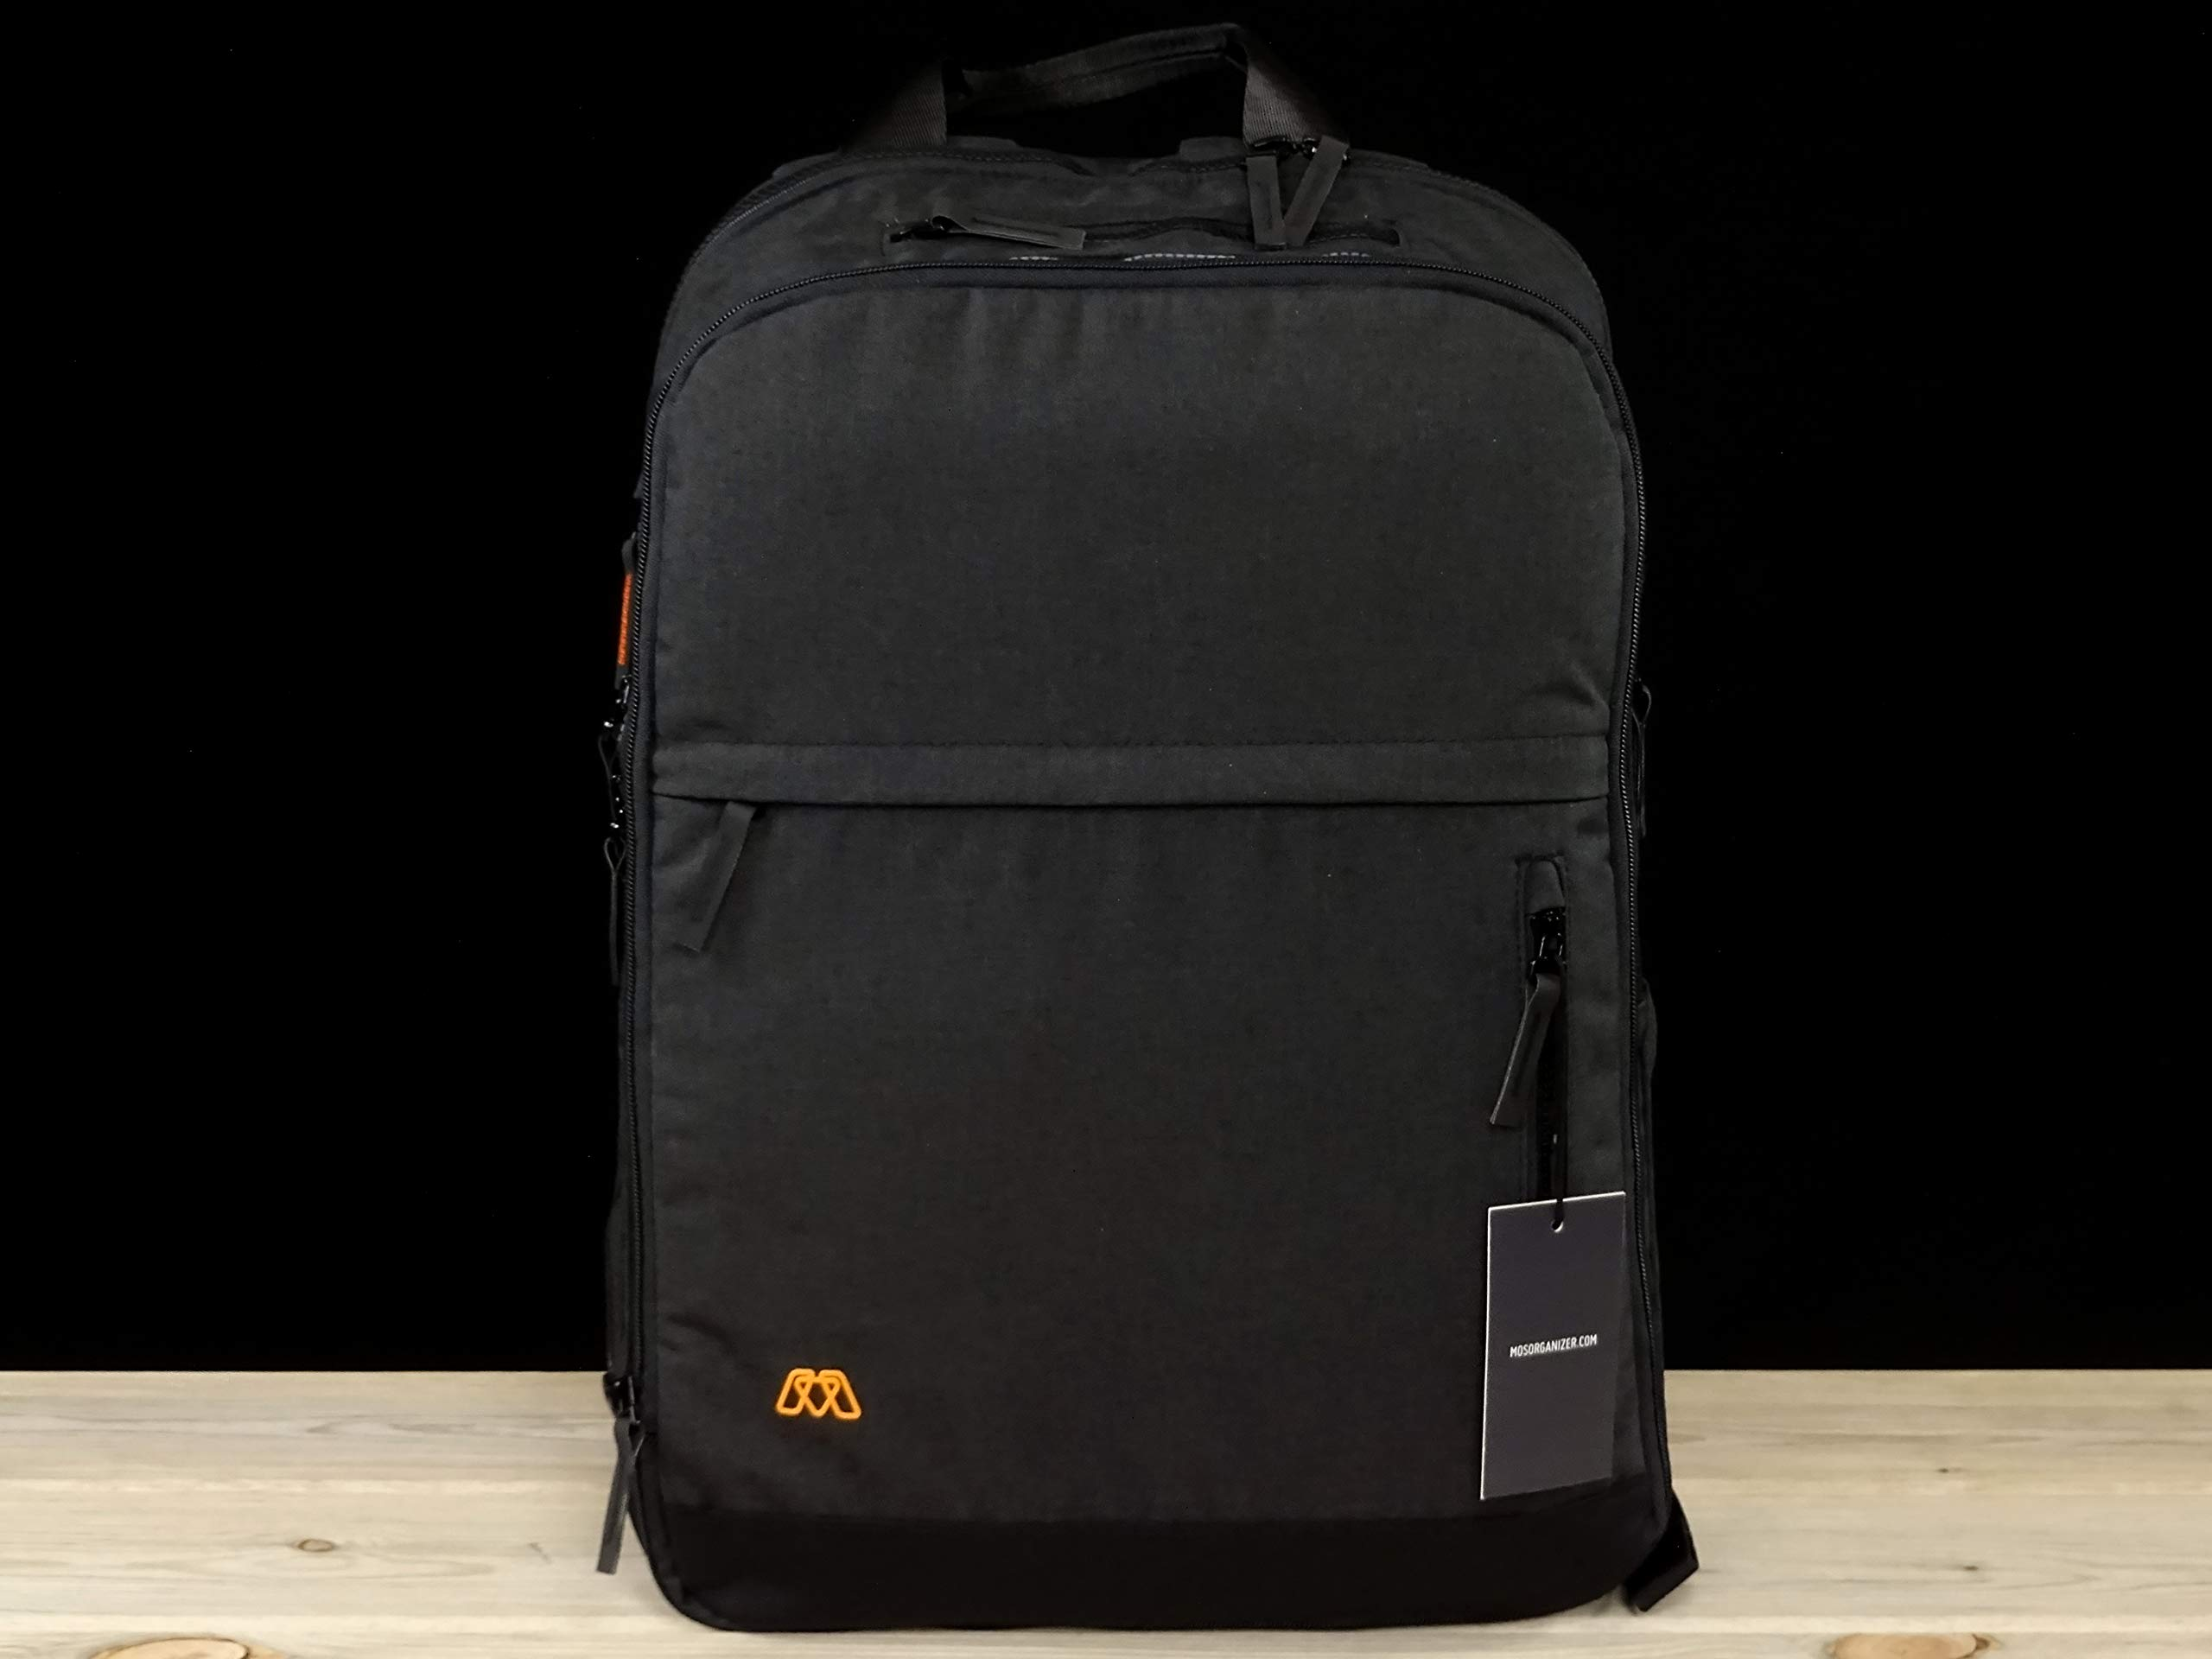 MOS Pack Grande Electronics Backpack - Onyx